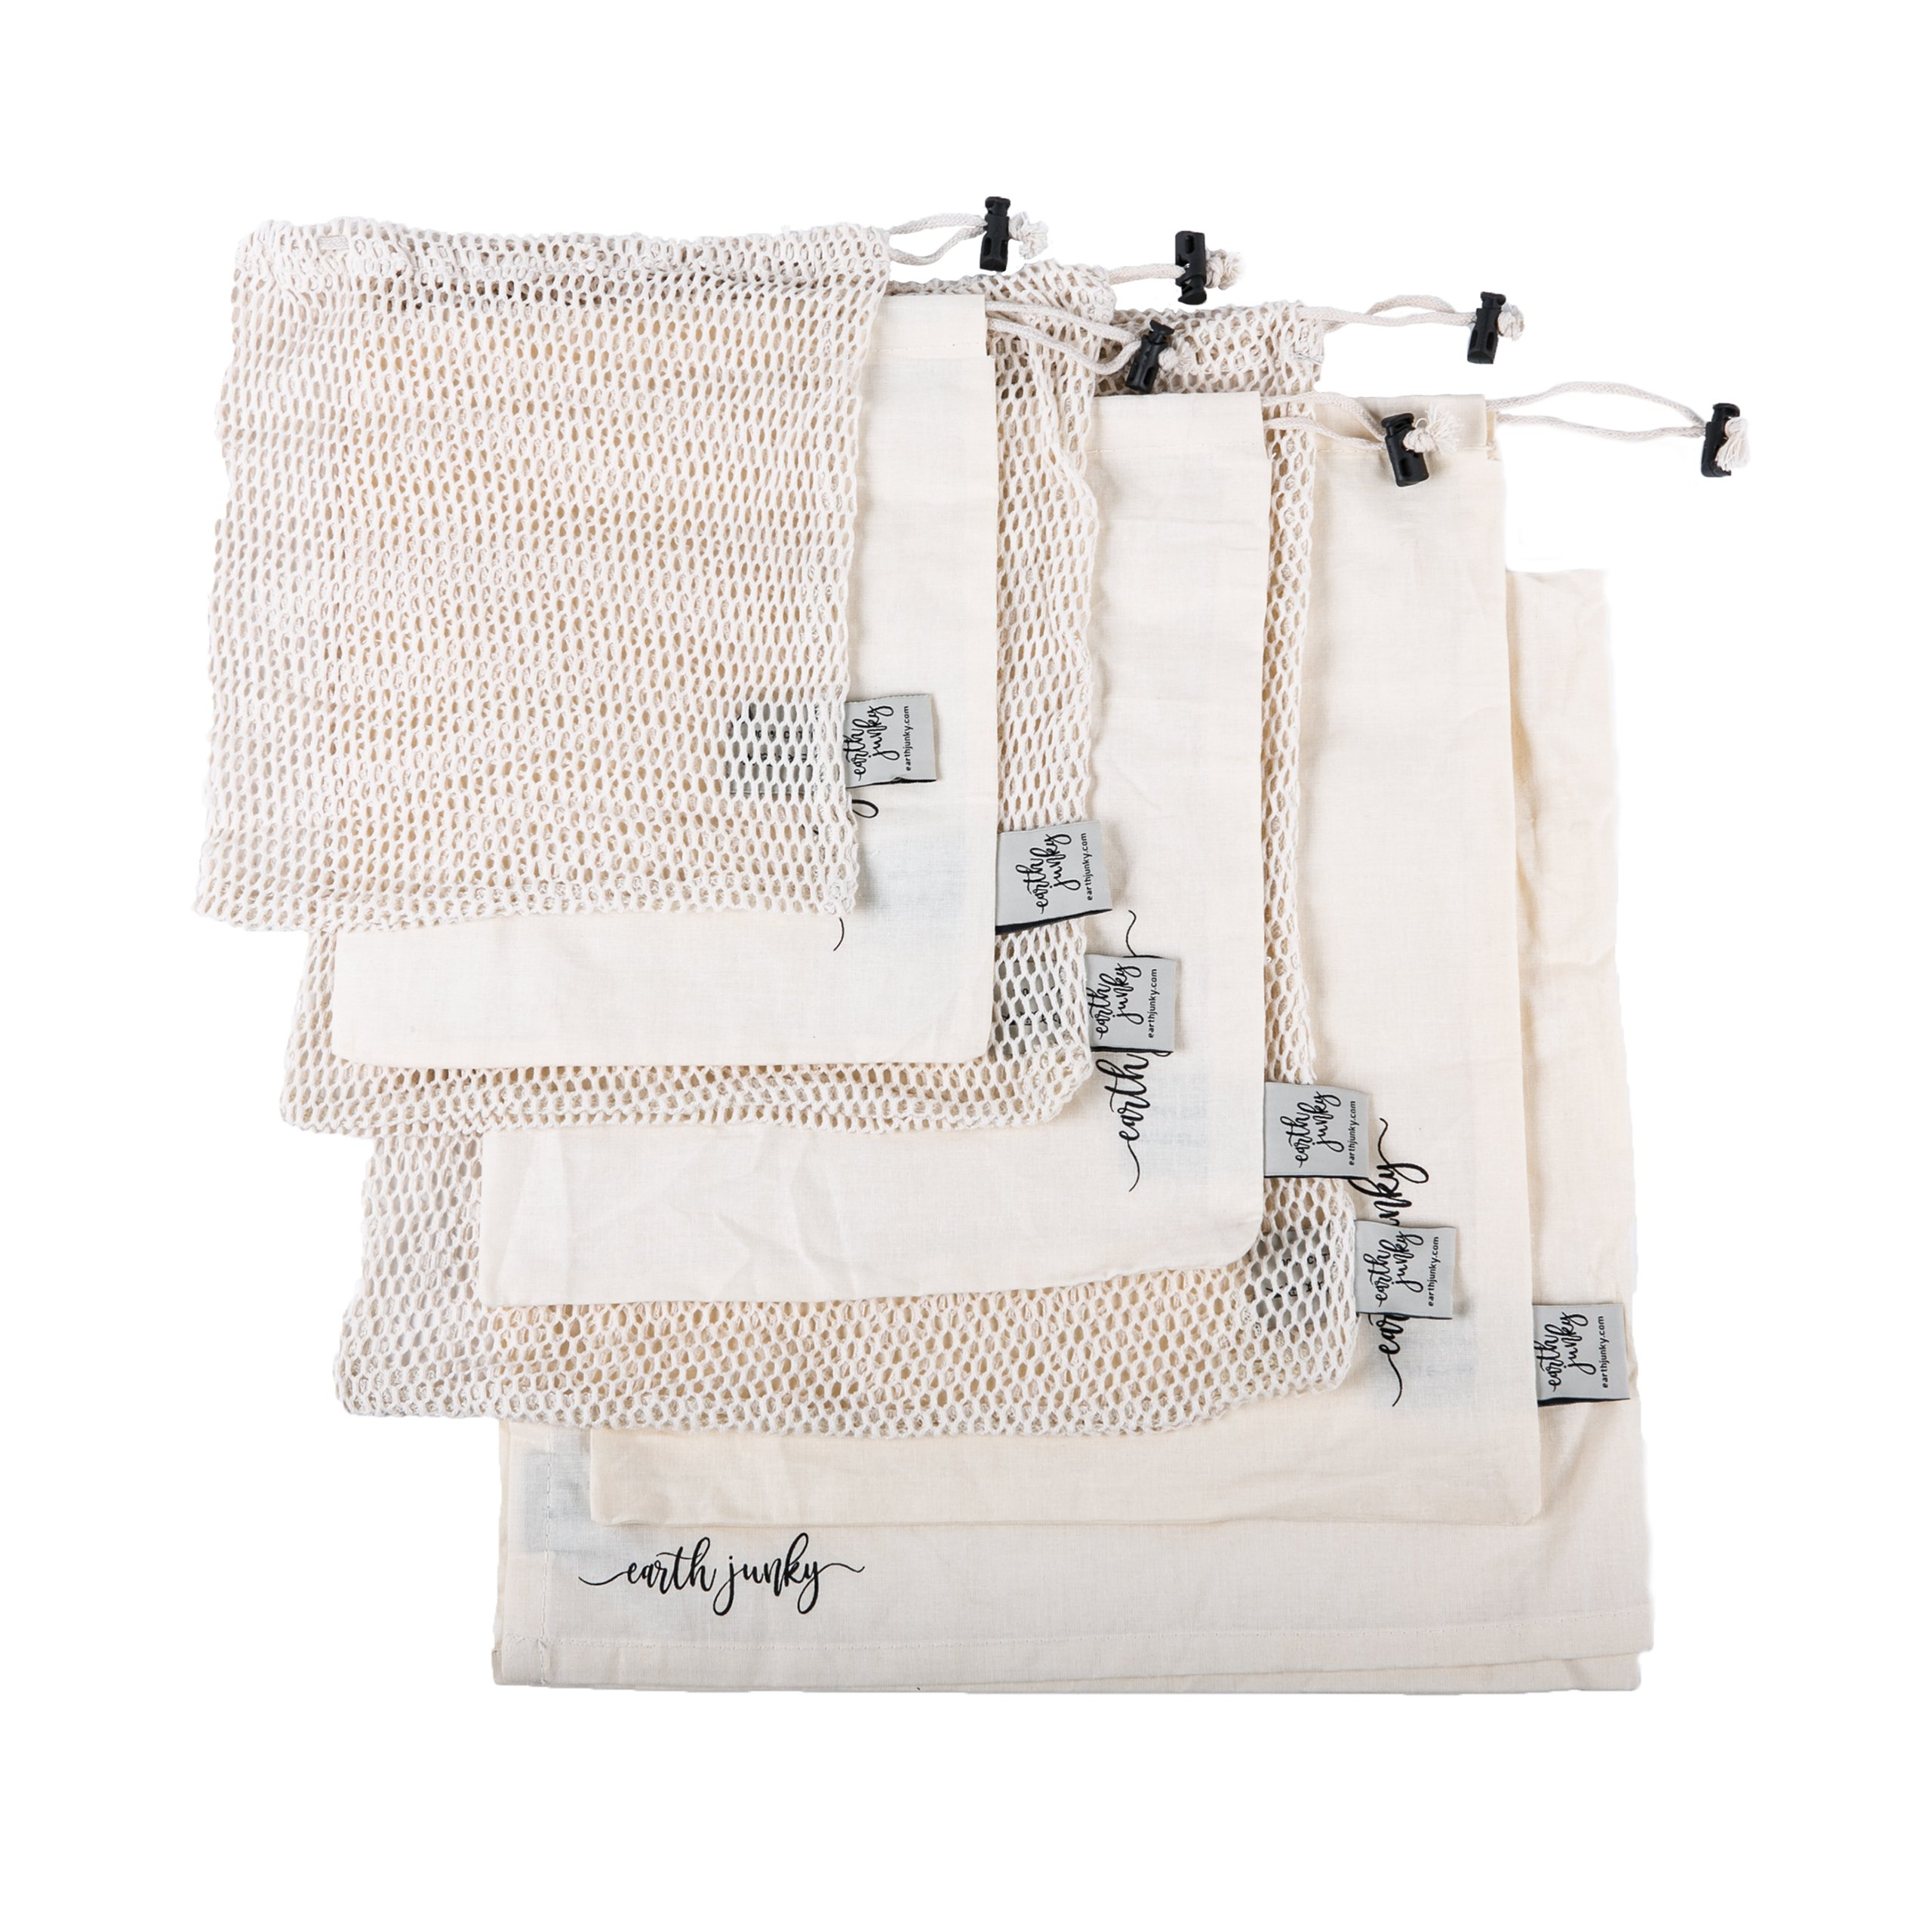 BEST REUSABLE PRODUCE BAGS for Grocery Shopping & Storage, 7 pc Set w/ BONUS Swaddle Sheet for Safe Freshness, 6 Eco-Friendly Organic Muslin Cotton Drawstring & Premium Mesh Bag Set, Washable